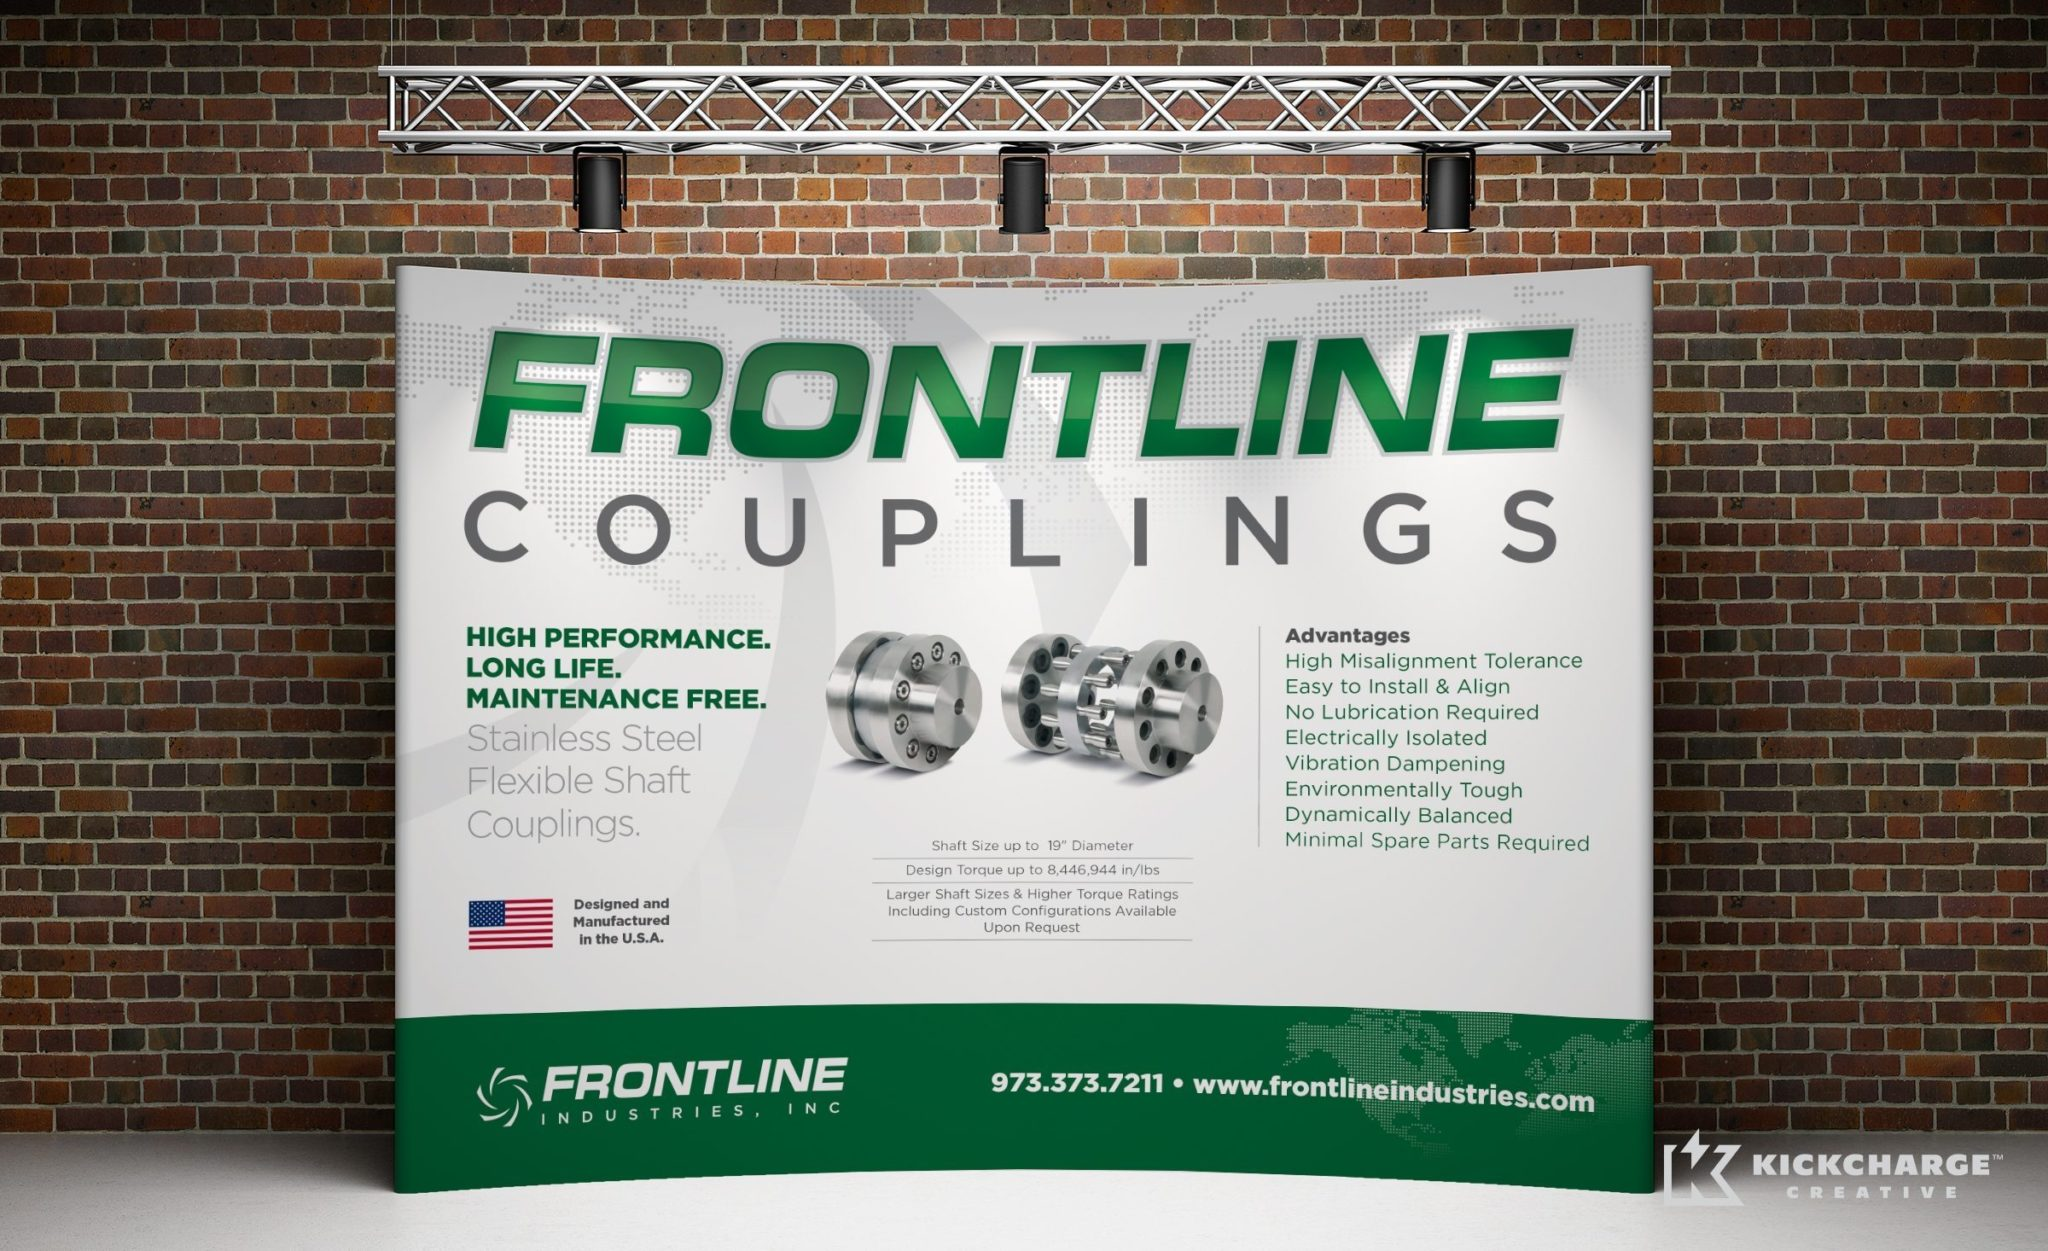 Frontline Industries Inc.